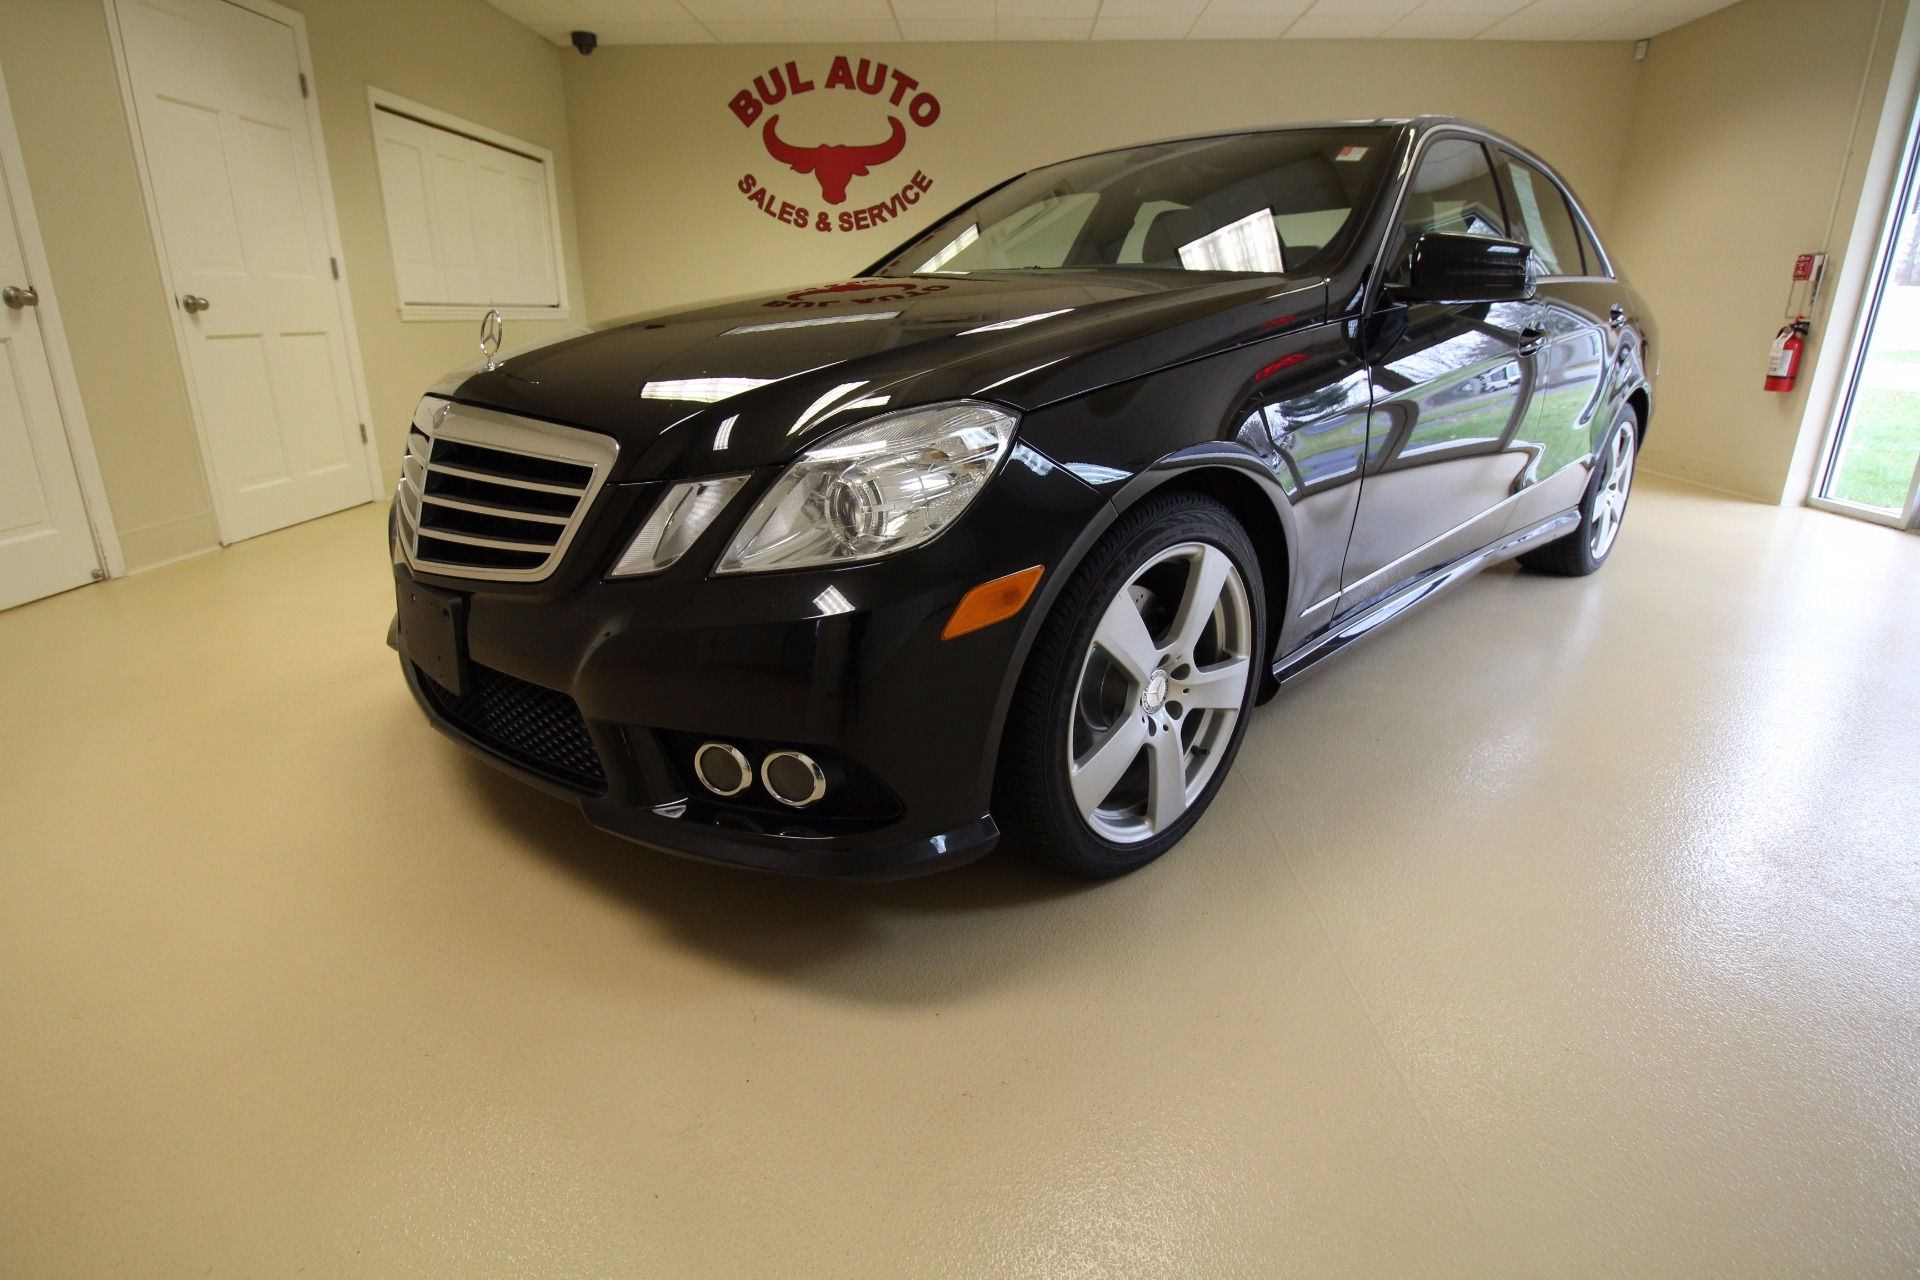 2010 mercedes benz e350 4matic stock 17224 for sale near albany ny ny mercedes benz dealer. Black Bedroom Furniture Sets. Home Design Ideas